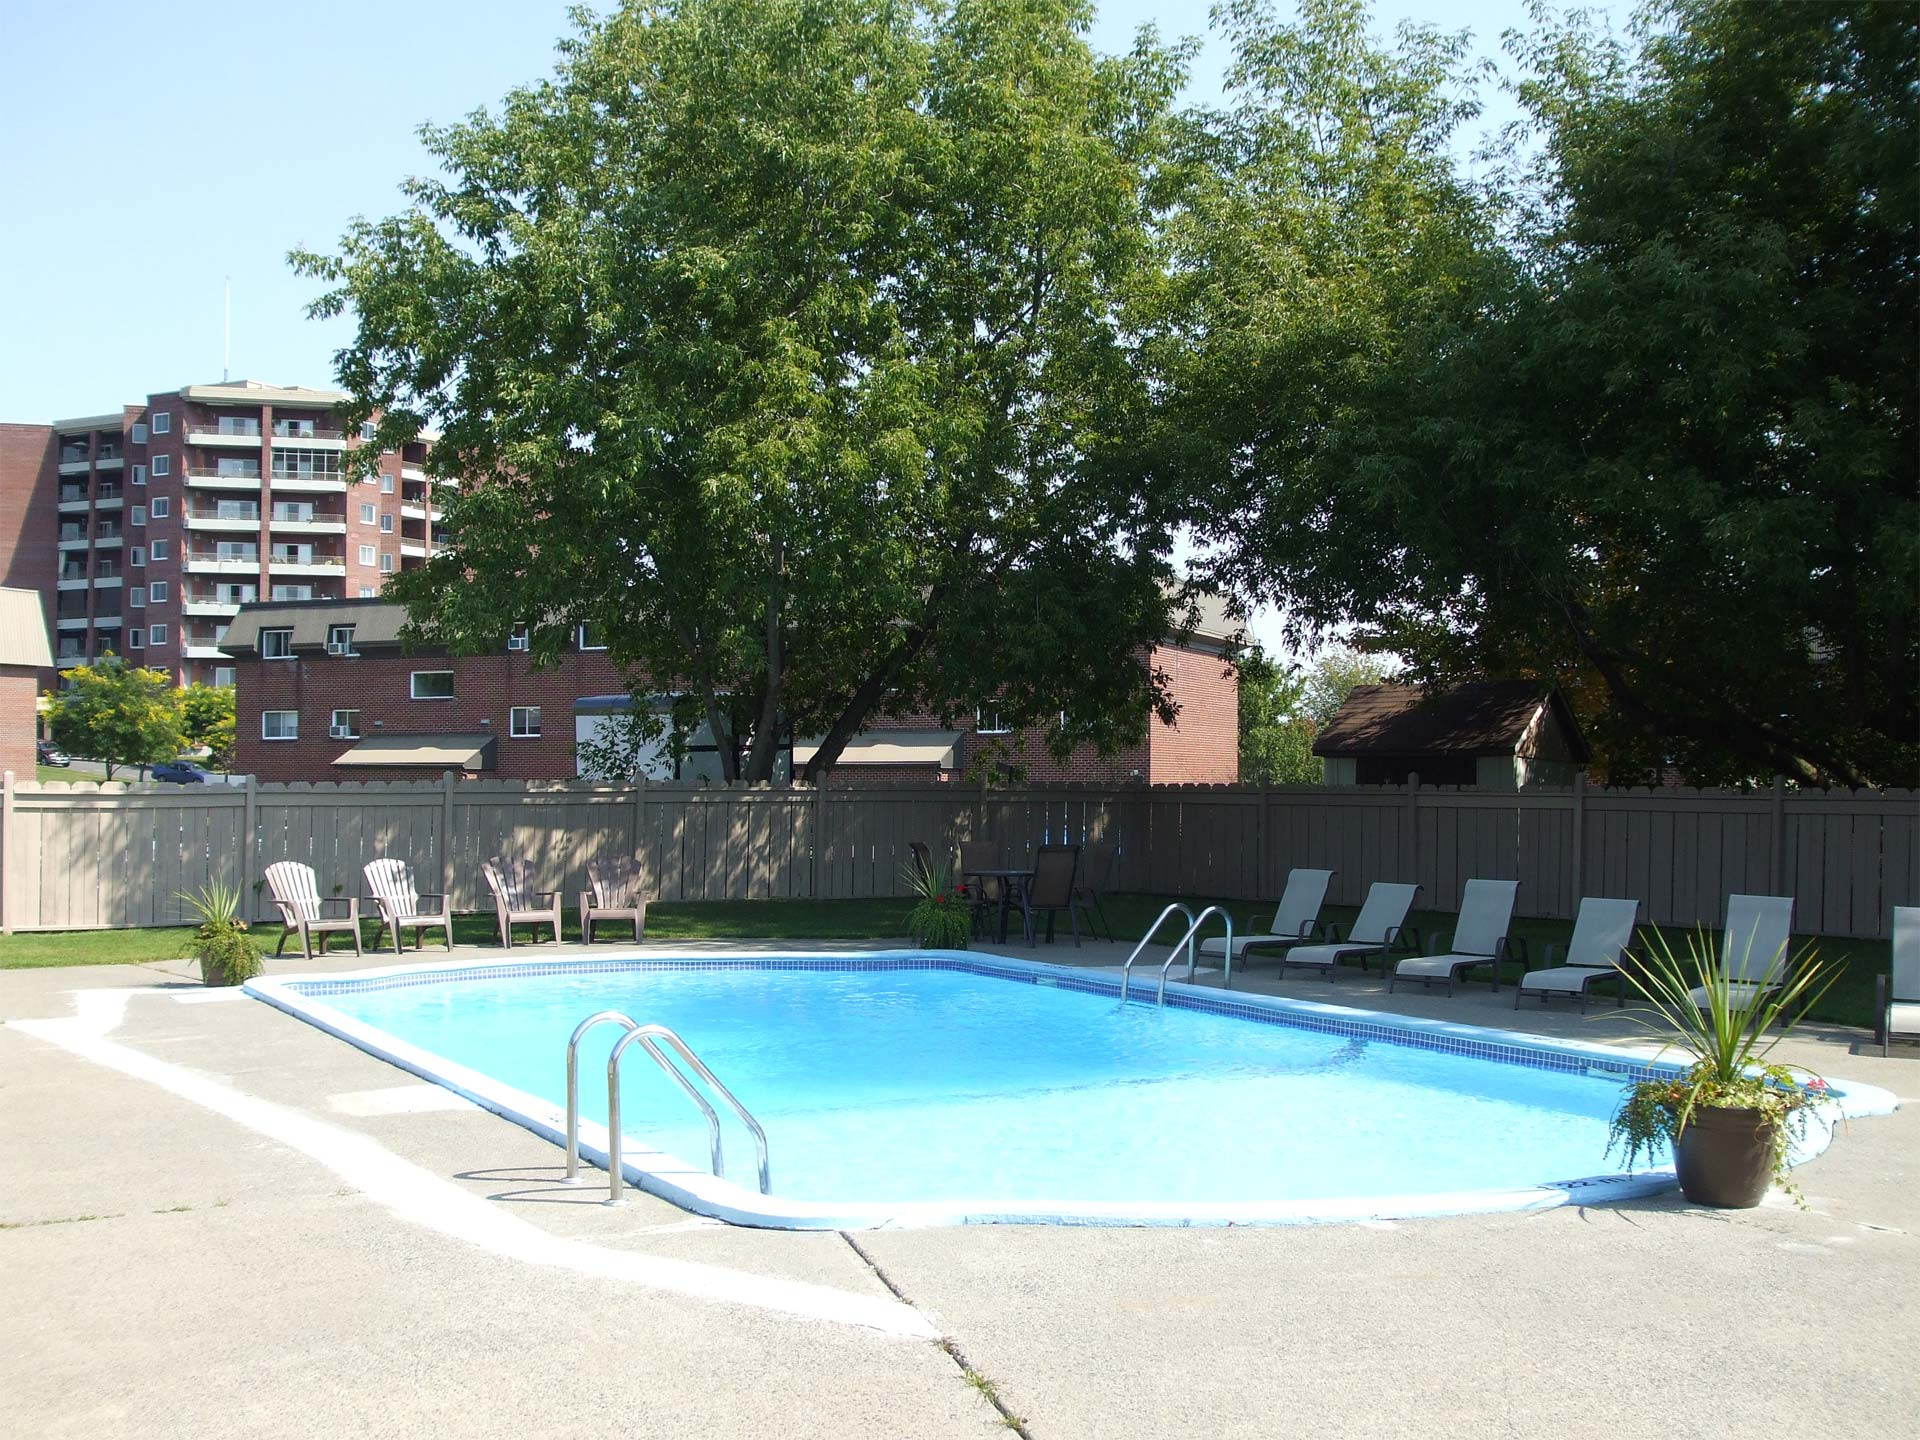 appartement-granby-125-135-st-michel-piscine2-retouche.jpg